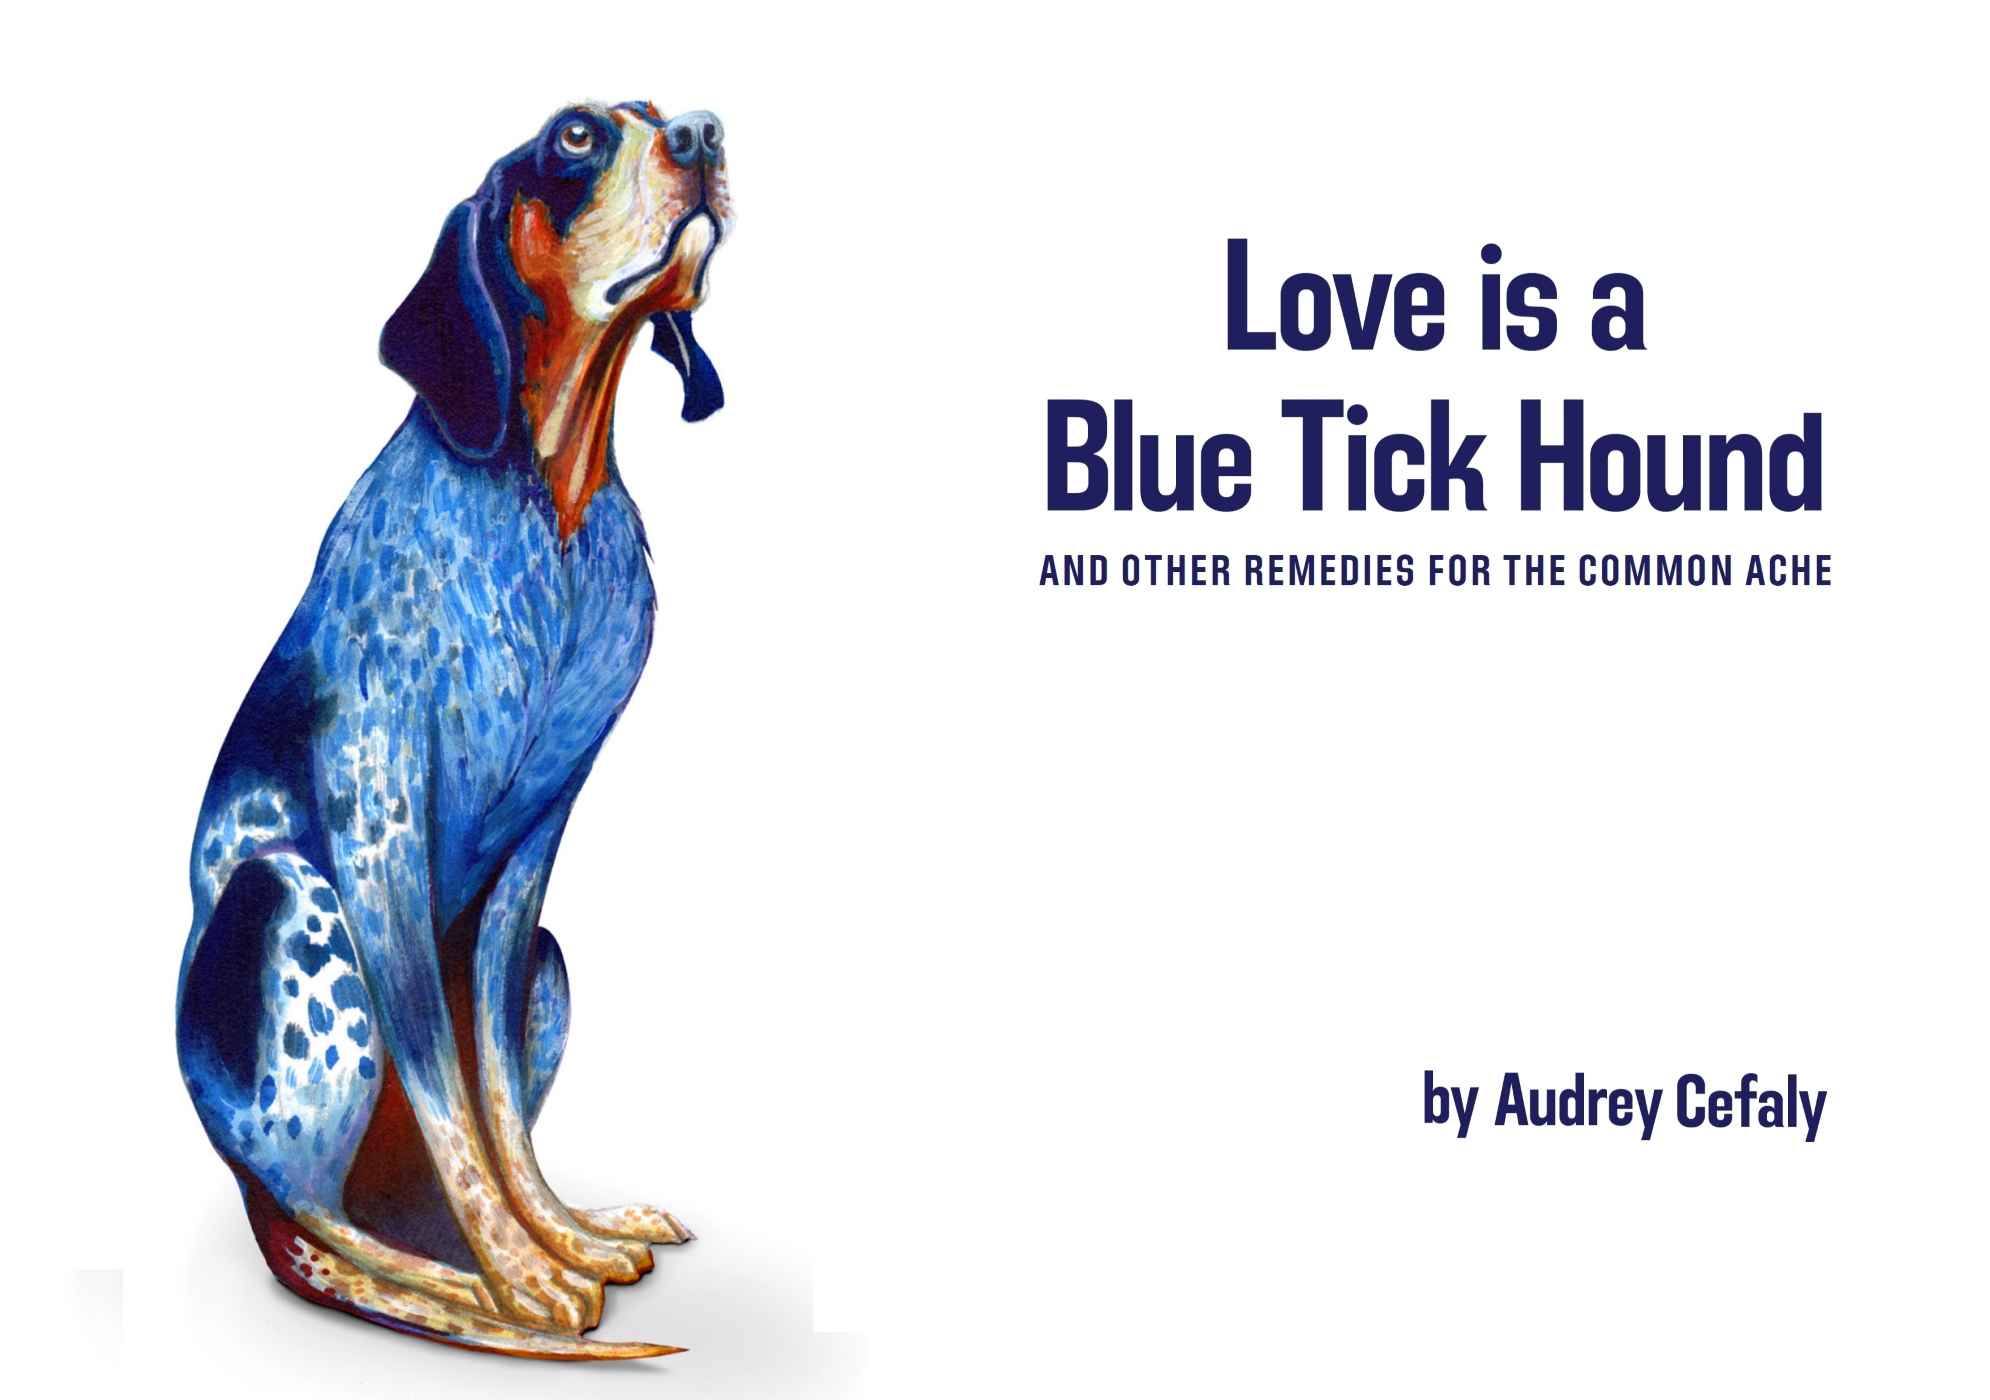 Love is a Blue Tick Hound